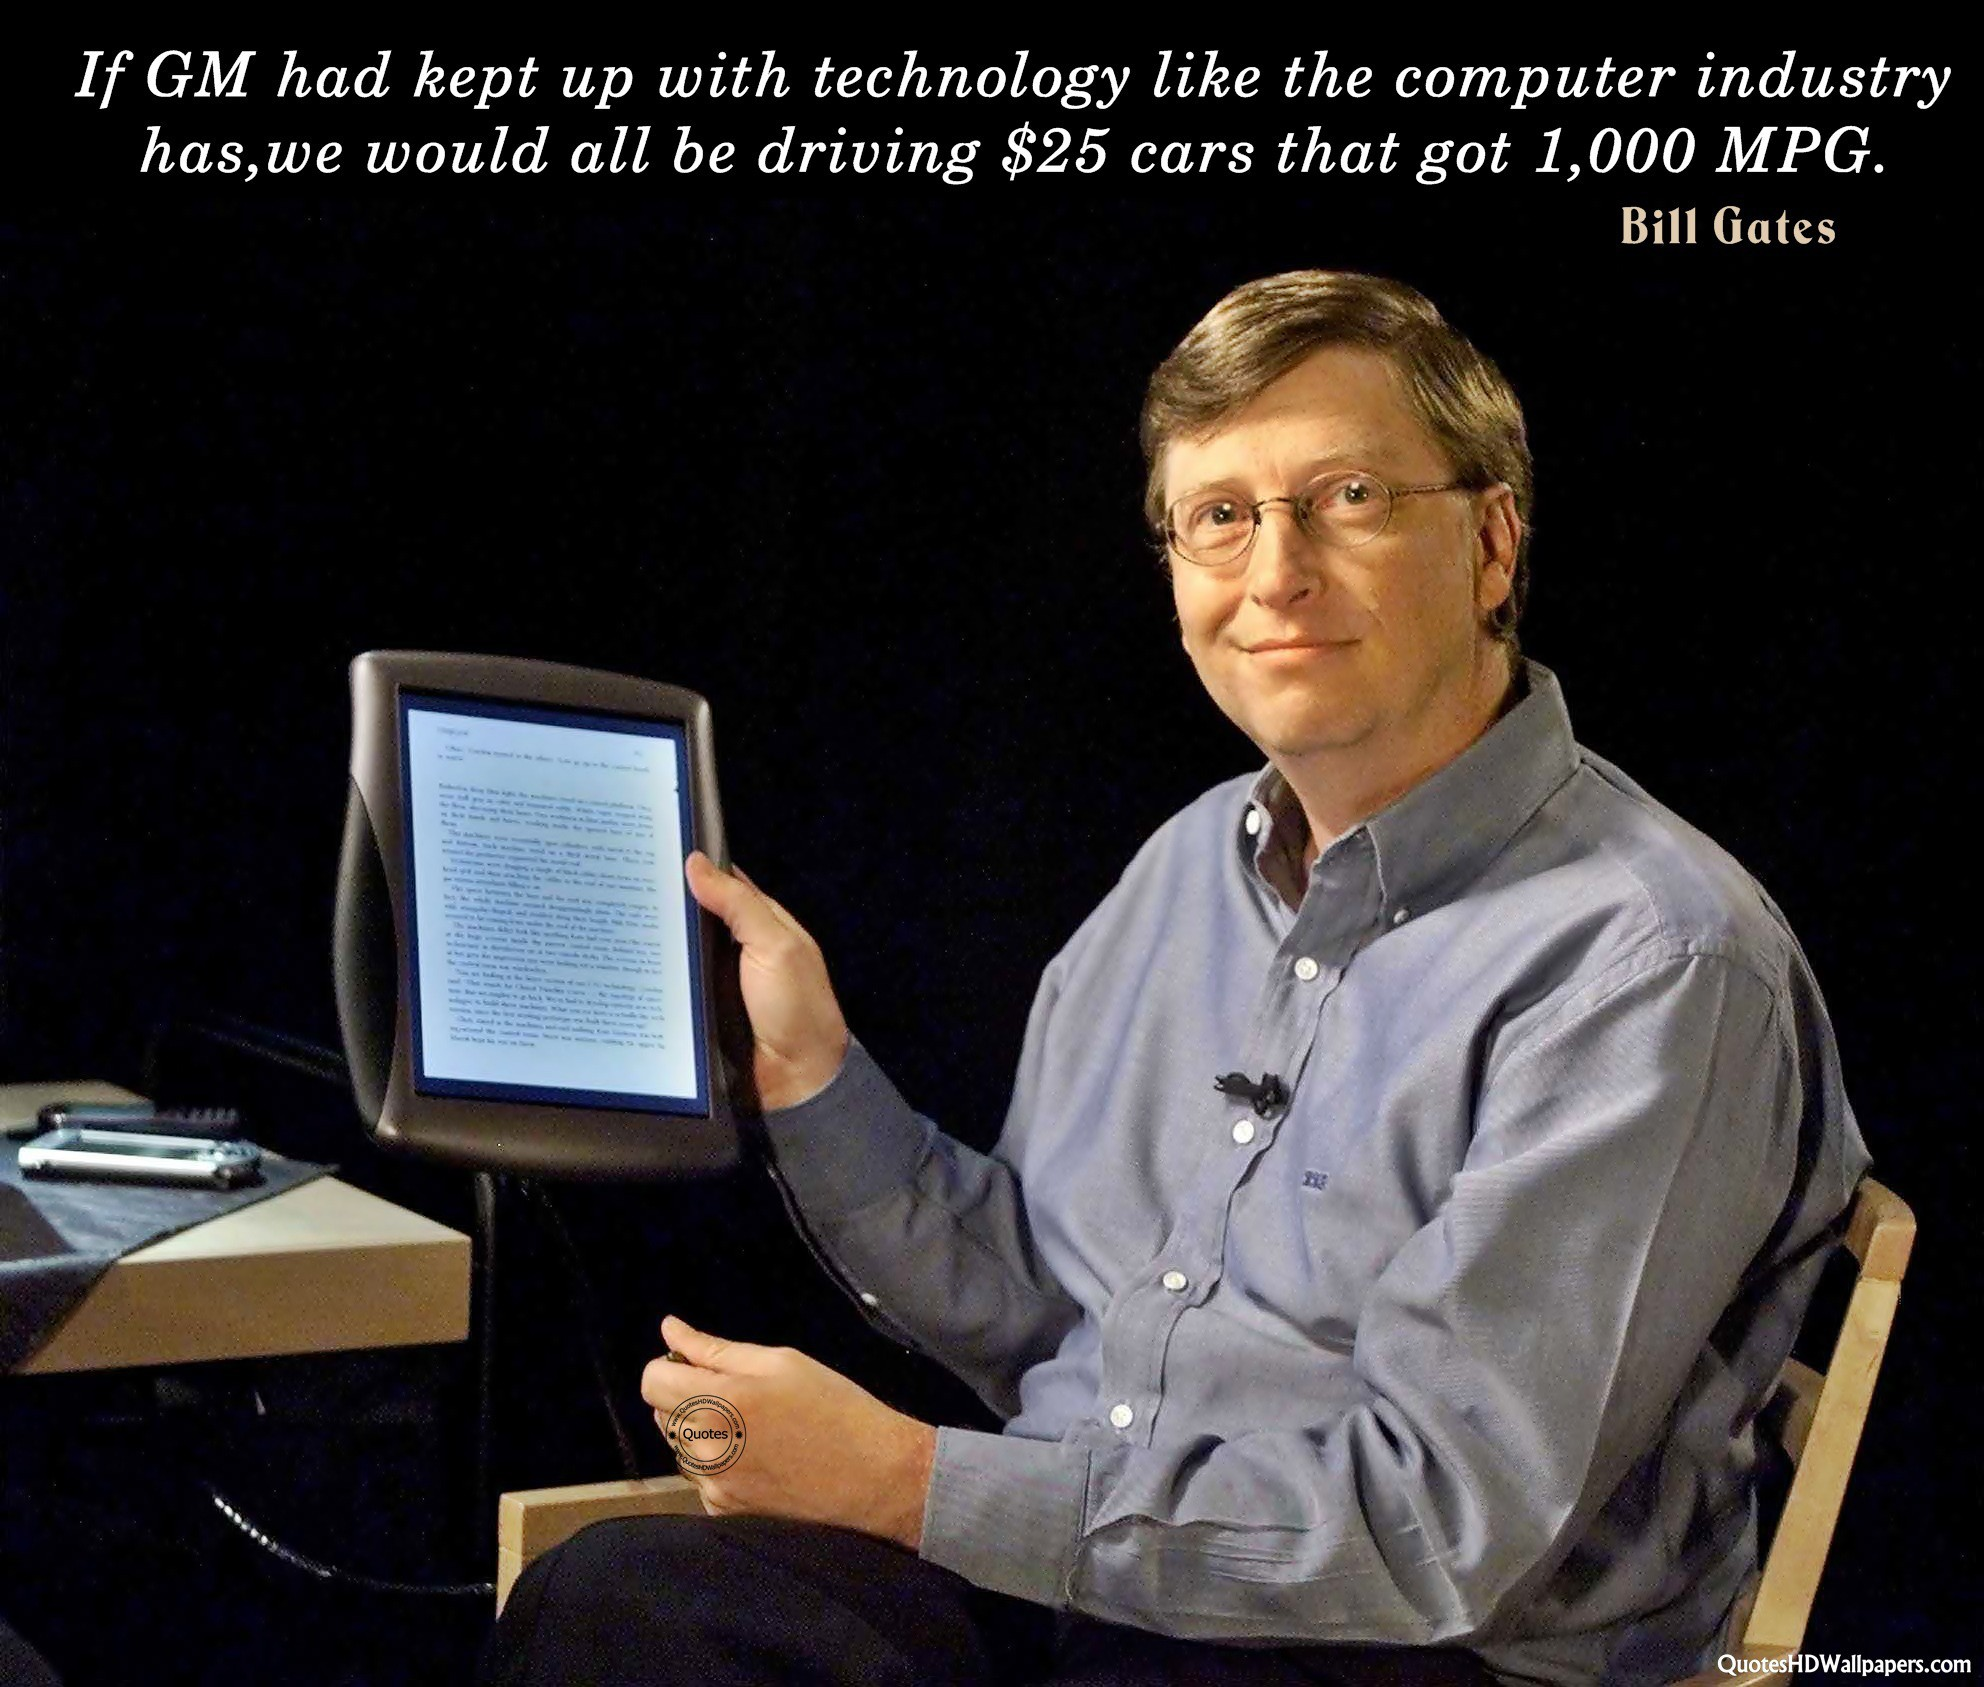 Bill Gates On Education Quotes: Bill Gates Quotes On Technology. QuotesGram